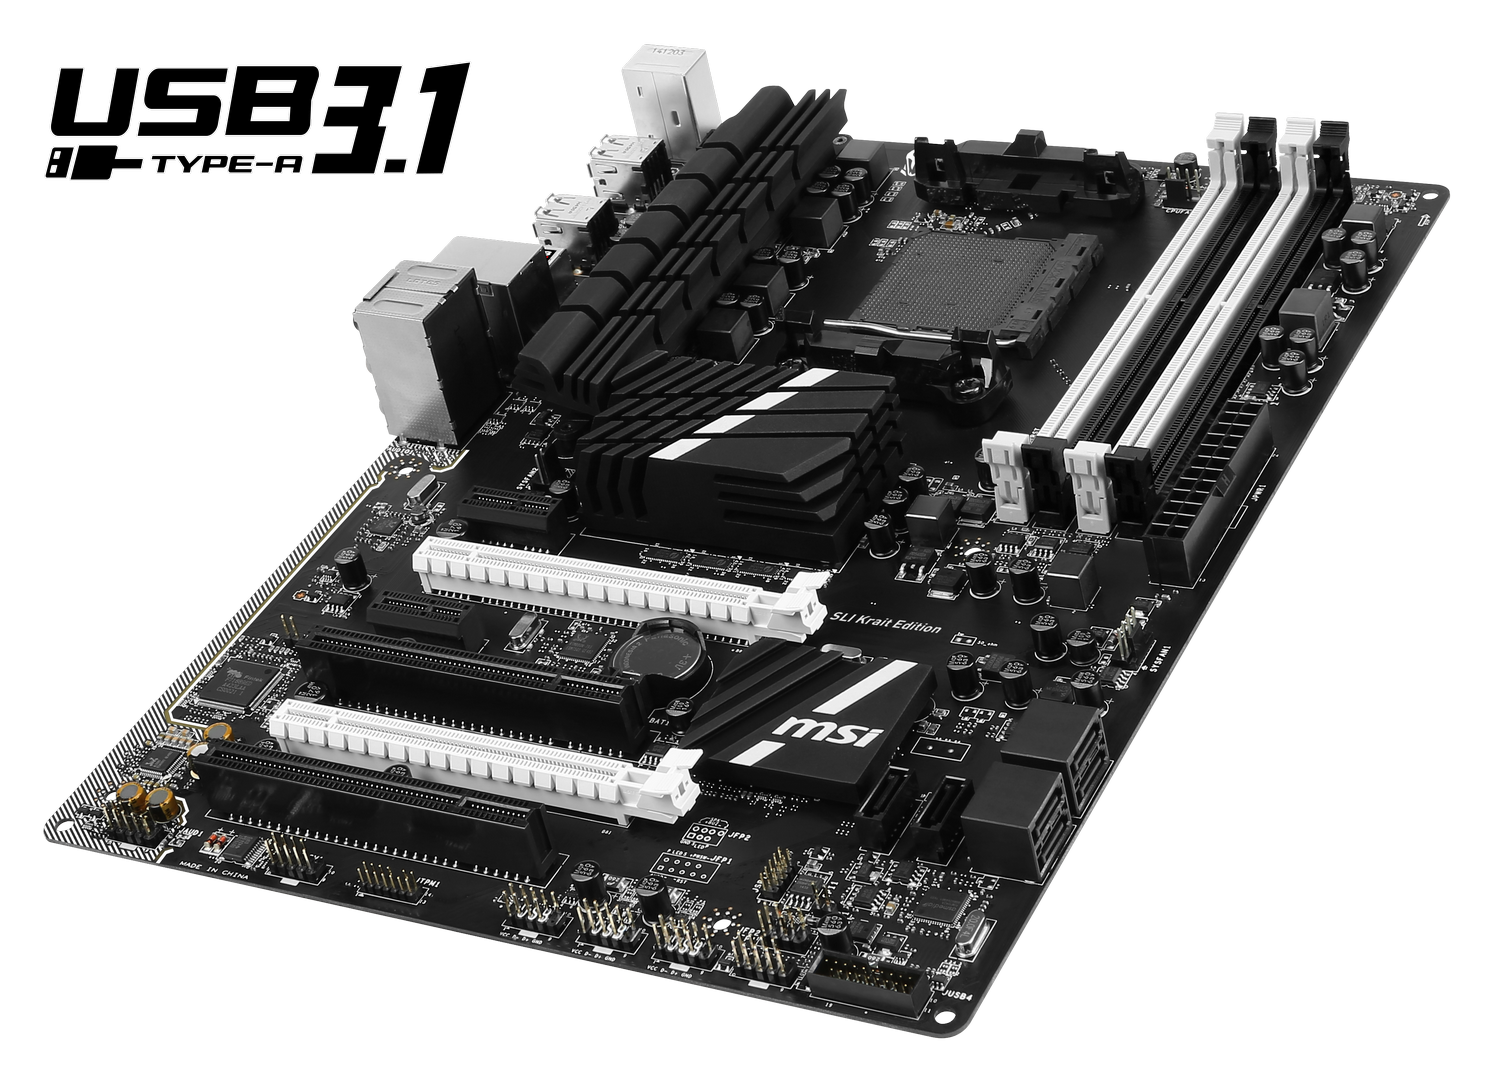 msi releases 970a sli krait edition motherboard with usb 3 1